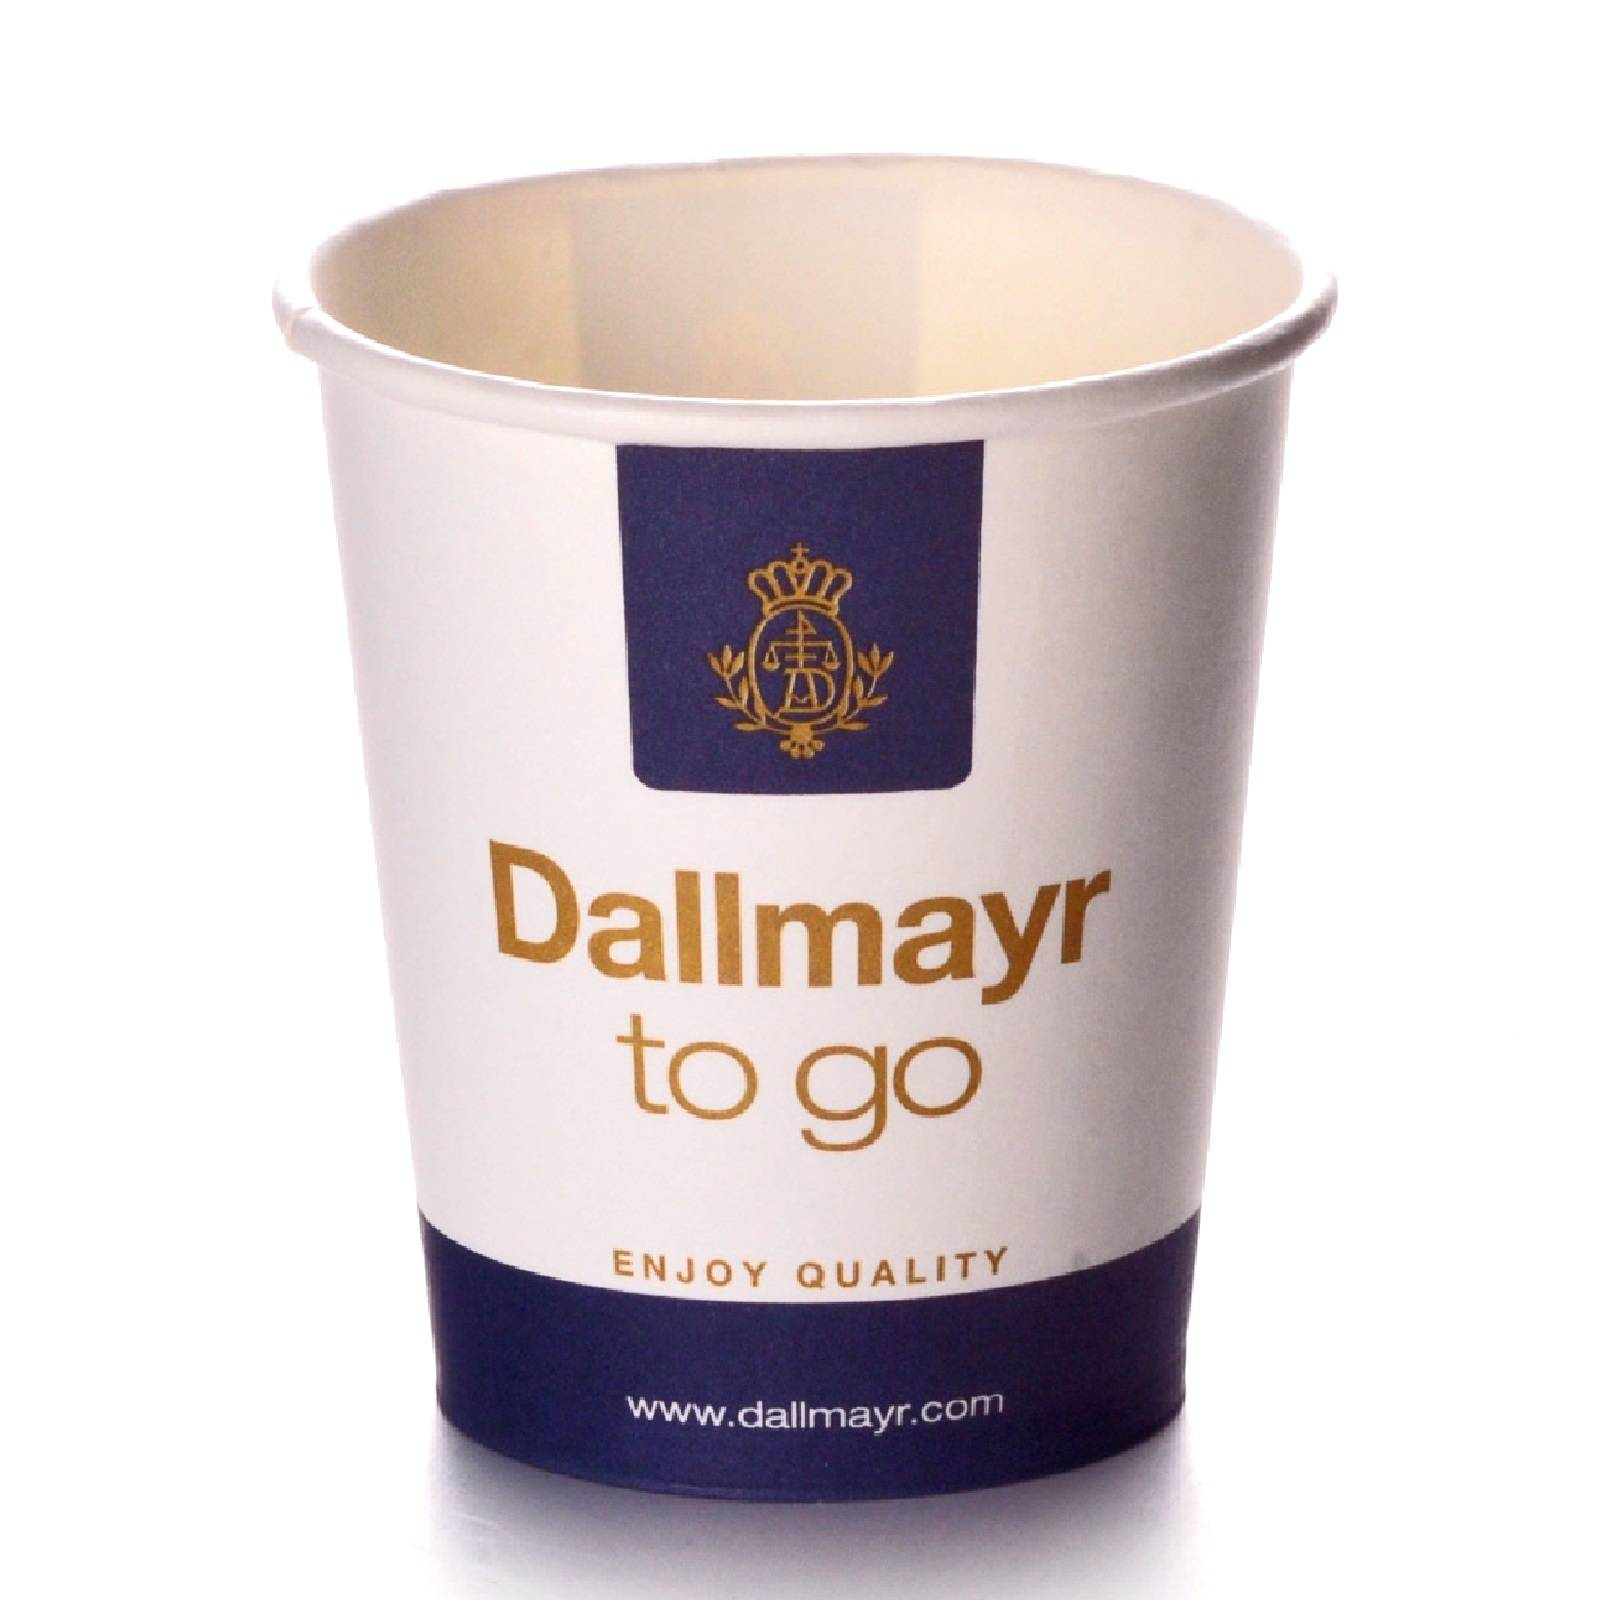 Dallmayr Coffee to go Becher 0,2l Pappbecher 50 Stk.